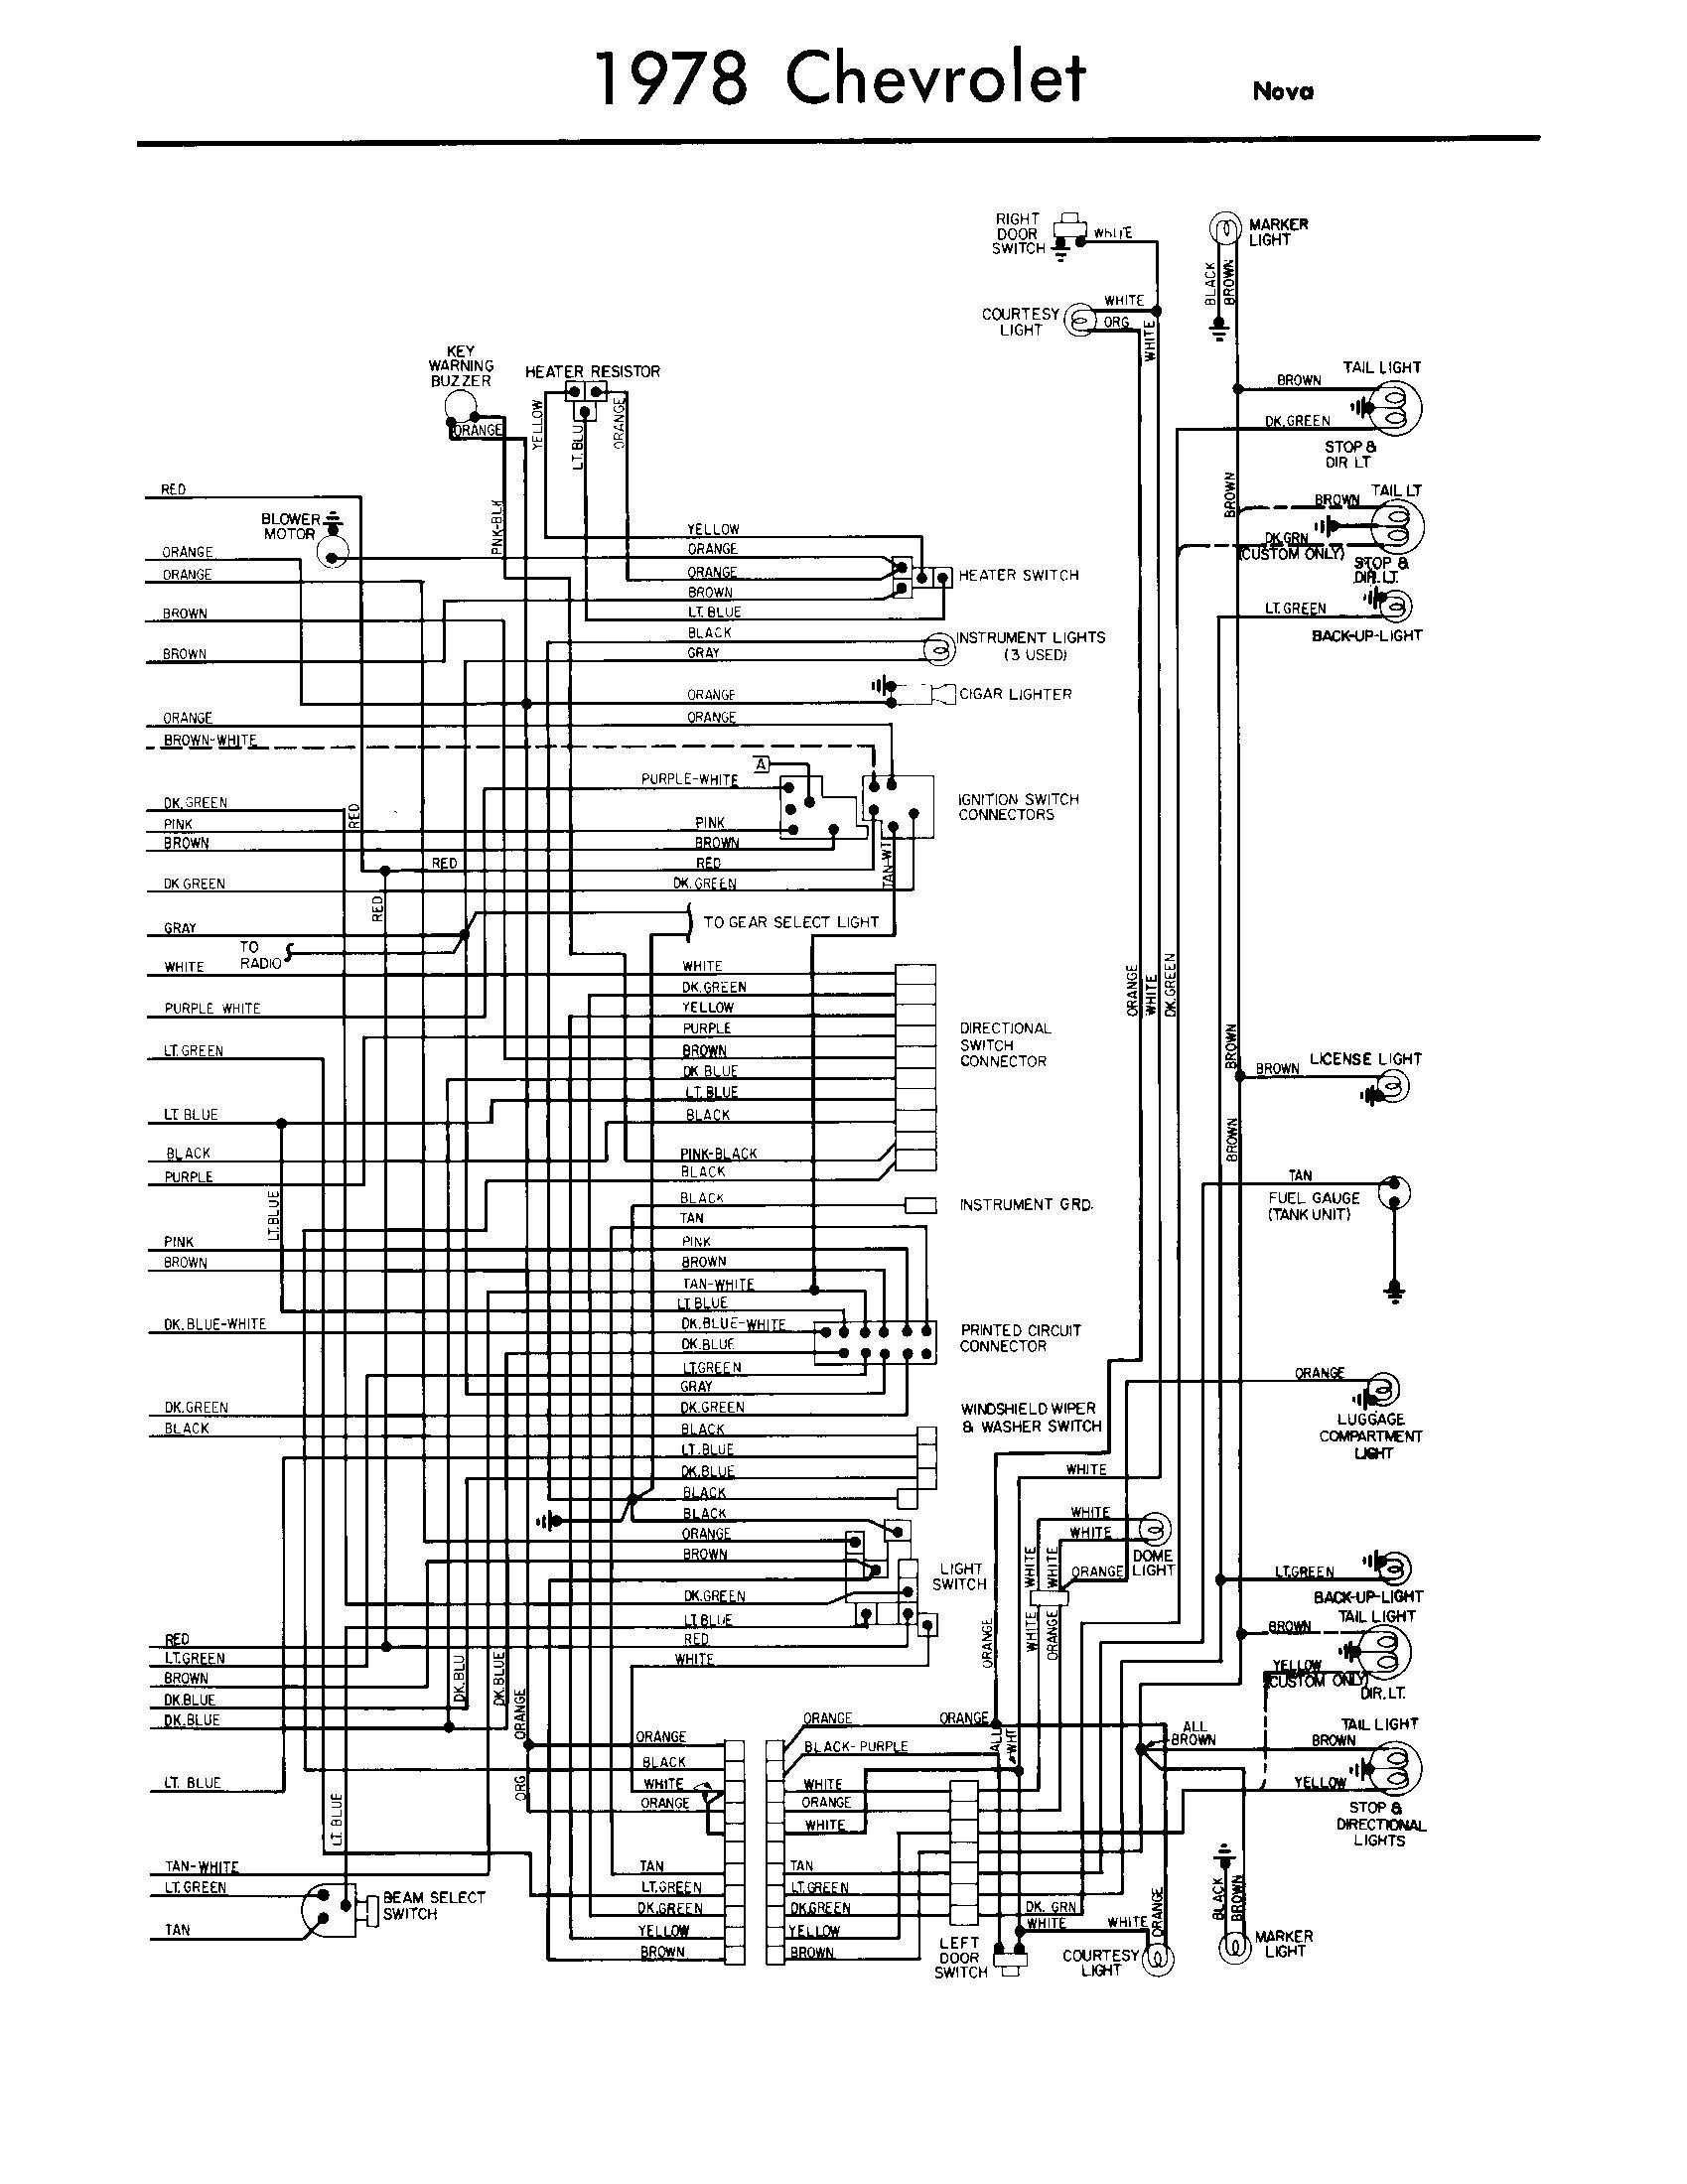 1978 Chevy Truck Wiring Diagram 1976 Chevy Corvette Wiring Diagram Wiring Data Of 1978 Chevy Truck Wiring Diagram 1993 toyota Pickup Engine Diagram 78 Chevy Starter Diagram Wiring